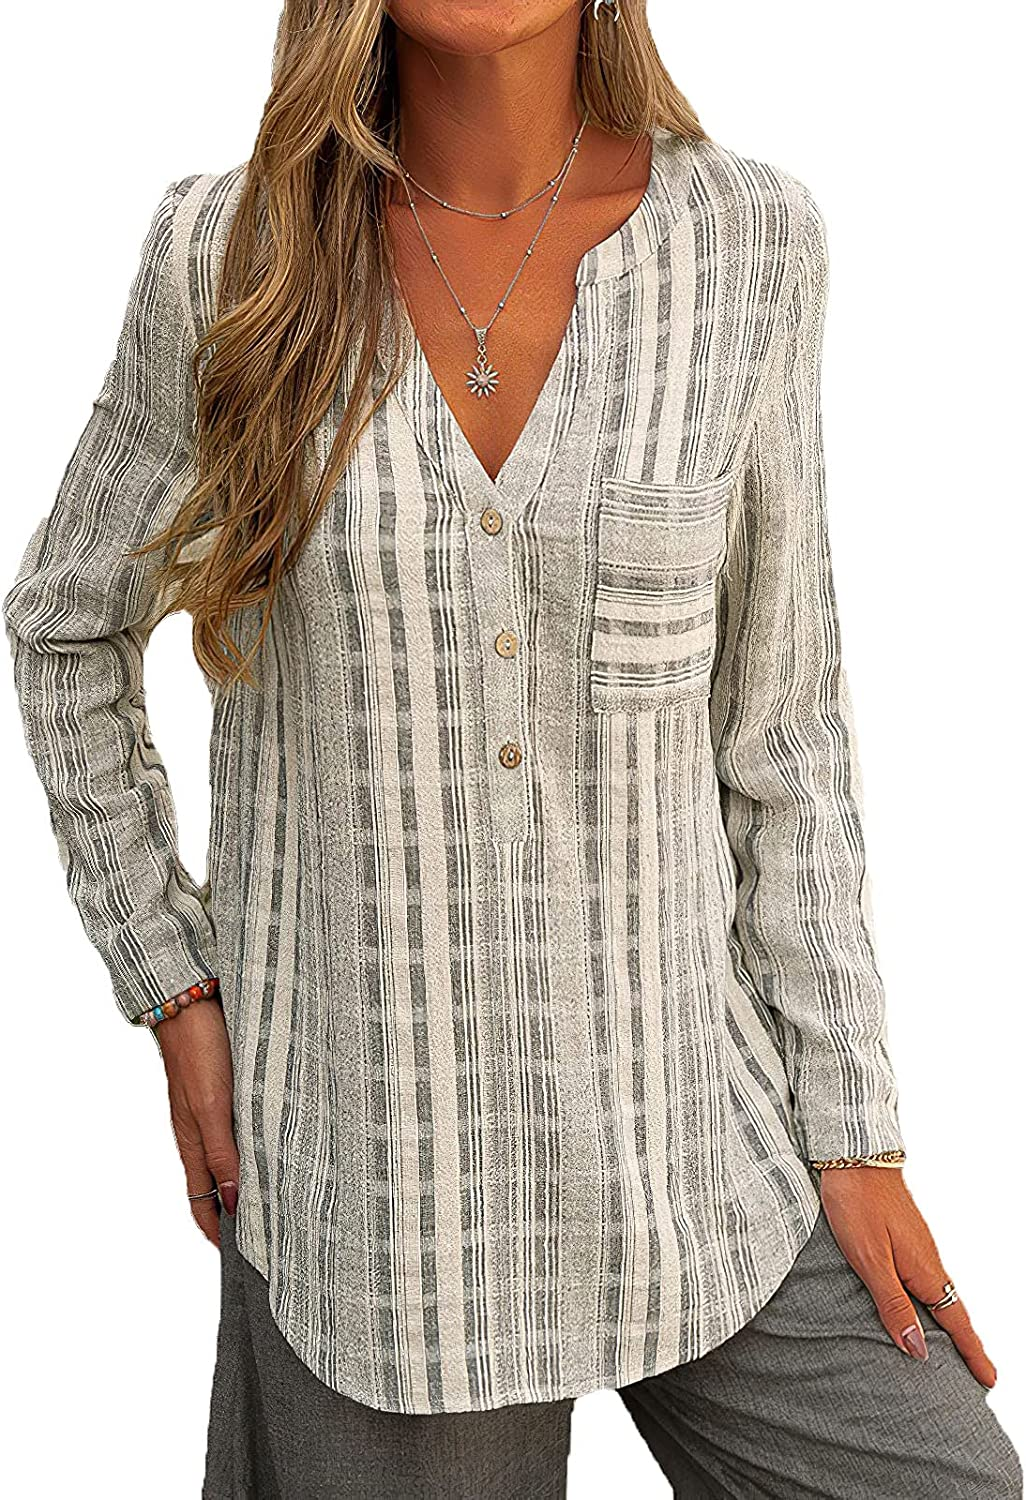 Women's Striped Button Down Shirts Casual Loose Long Sleeve V Neck Pockets Shirts for Women Tops